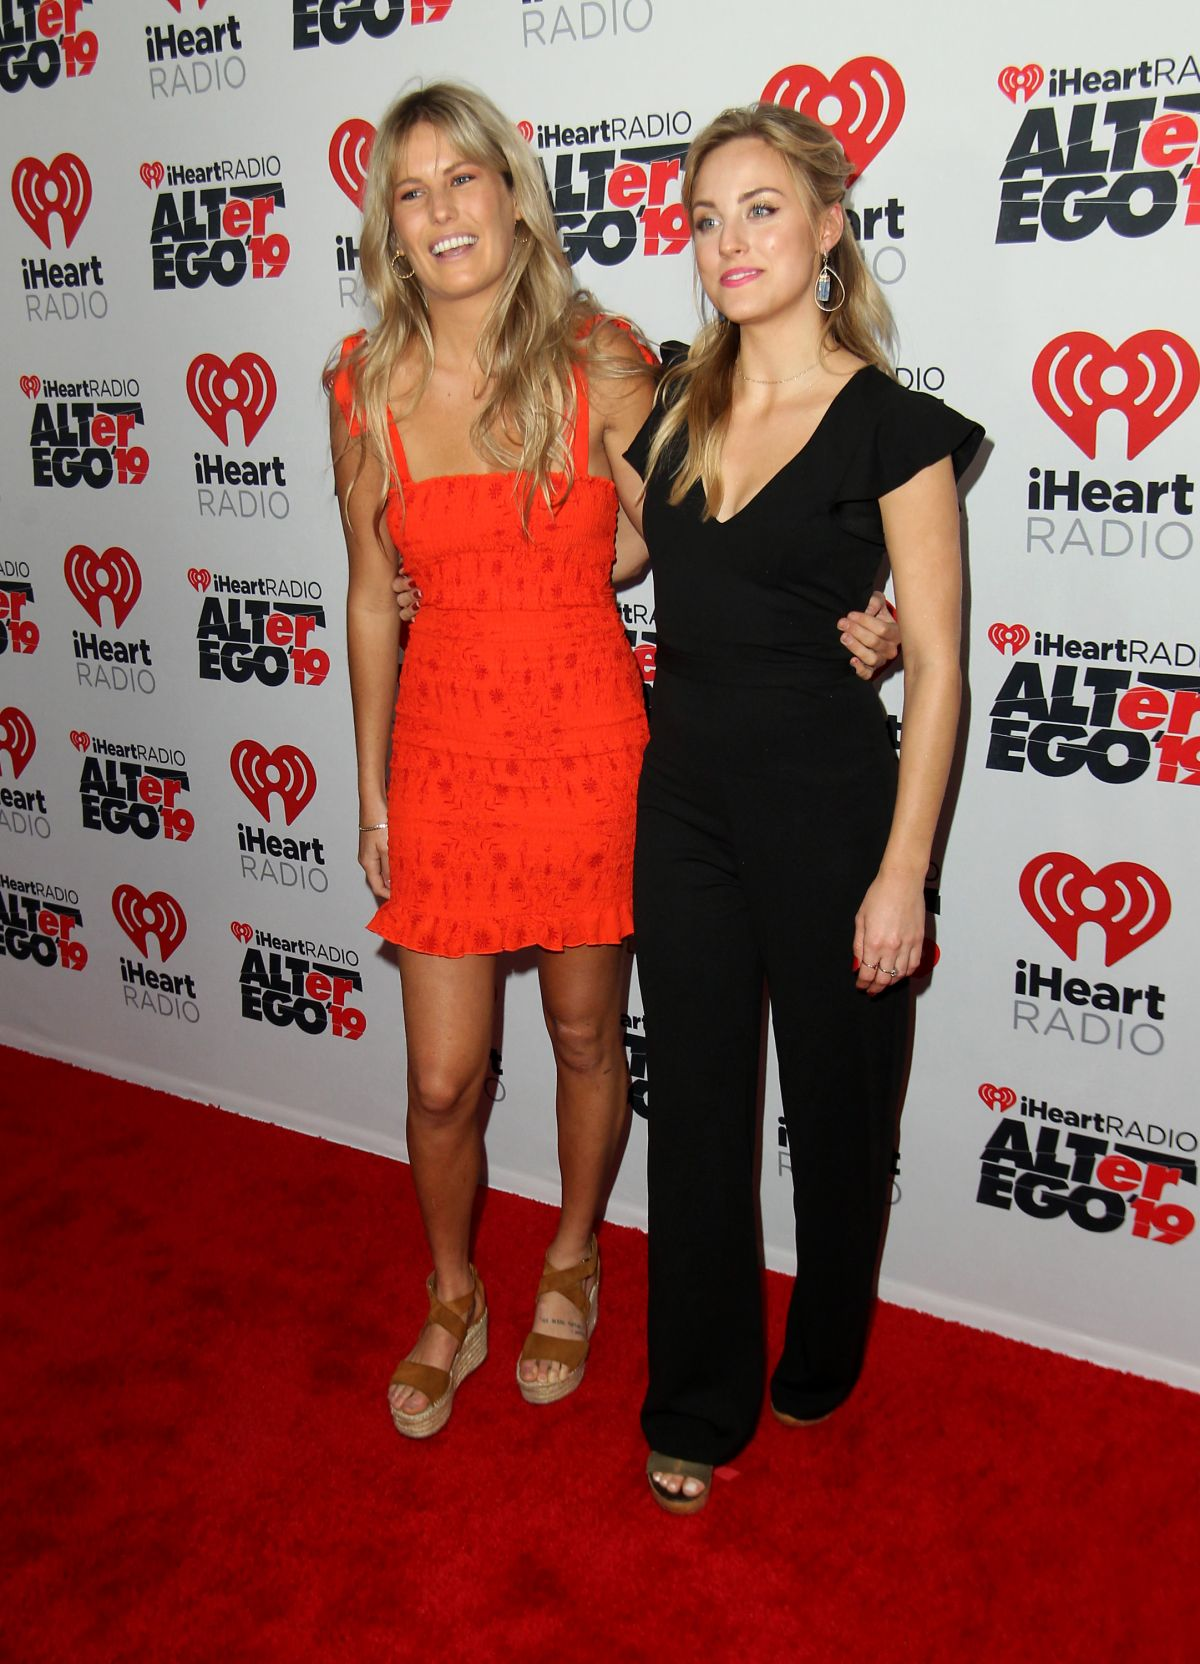 LILY MCMANUS and KENDALL LONG at 2019 Iheartradio Alter Ego